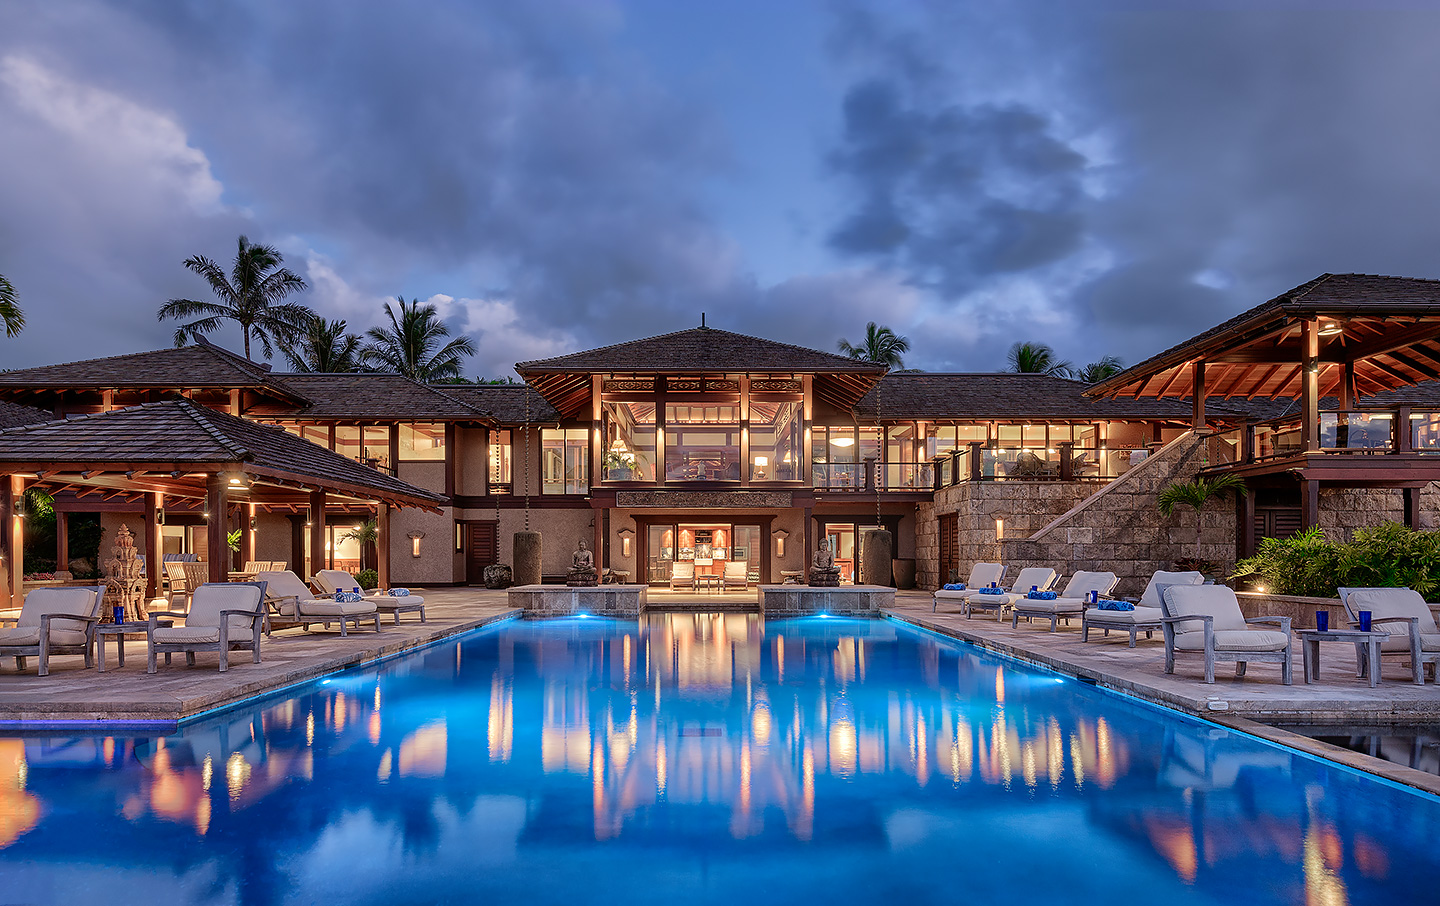 Hawaiis Most Expensive Home Is On The Market And Its A Beauty 9homes